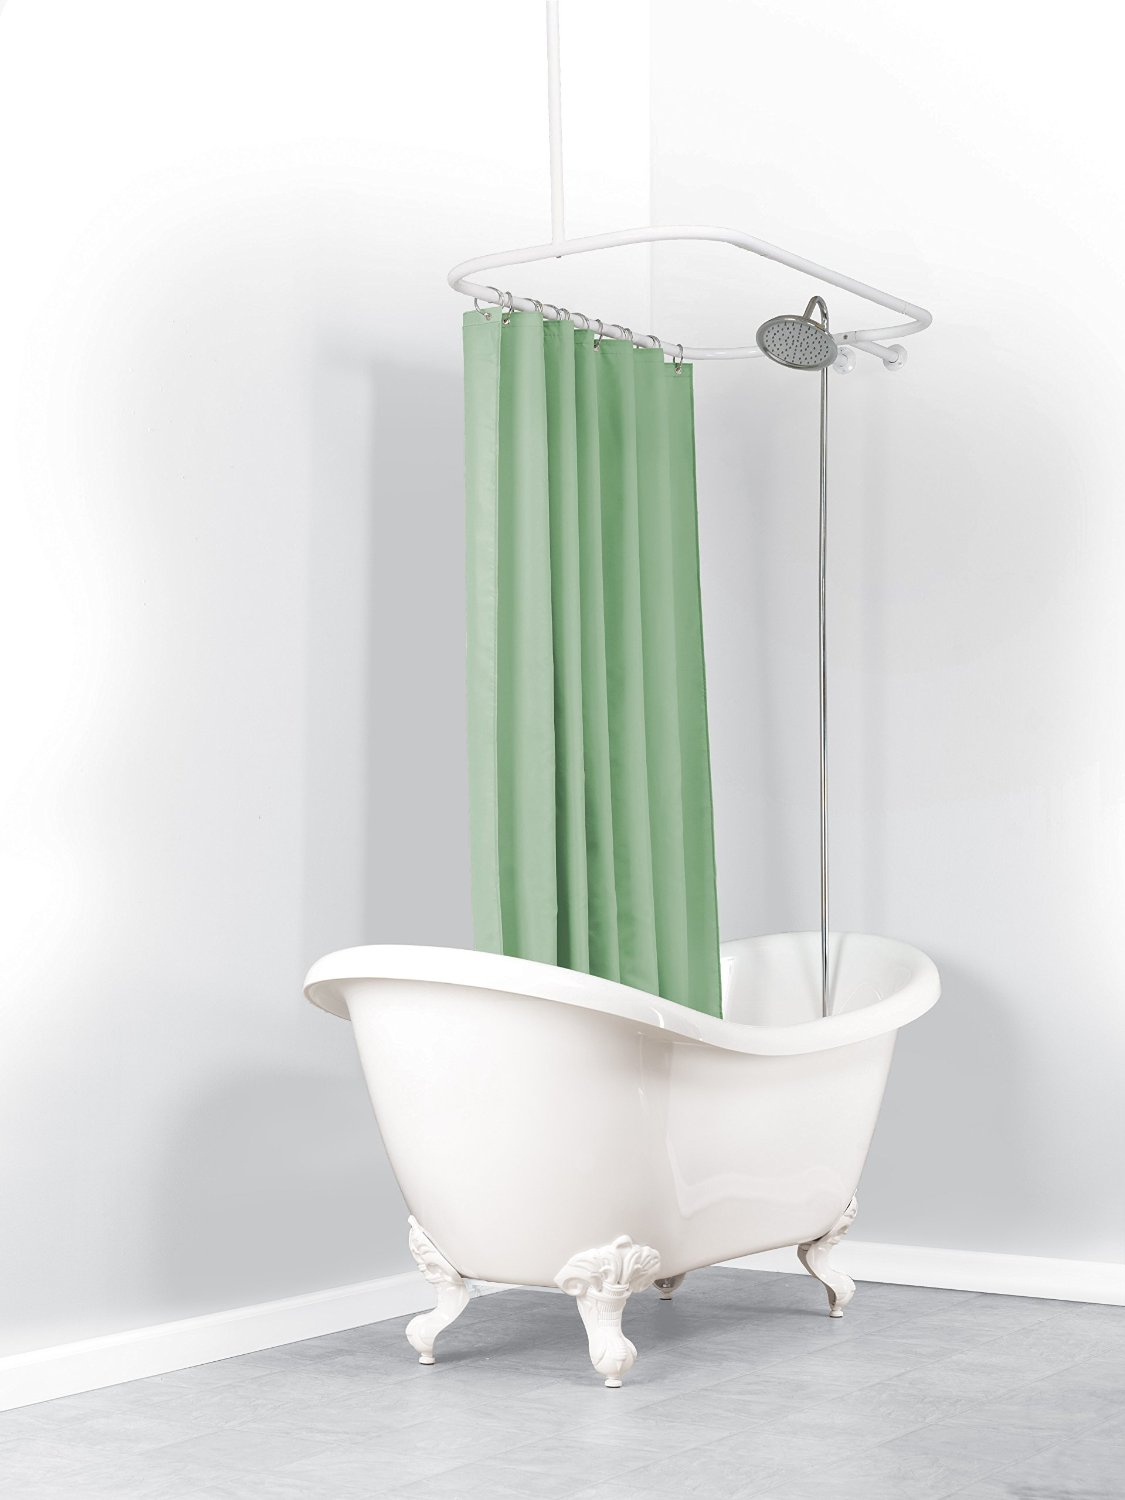 Catchy Ideas For Oval Shower Curtain Rod Design Exquisite Design inside proportions 1125 X 1500